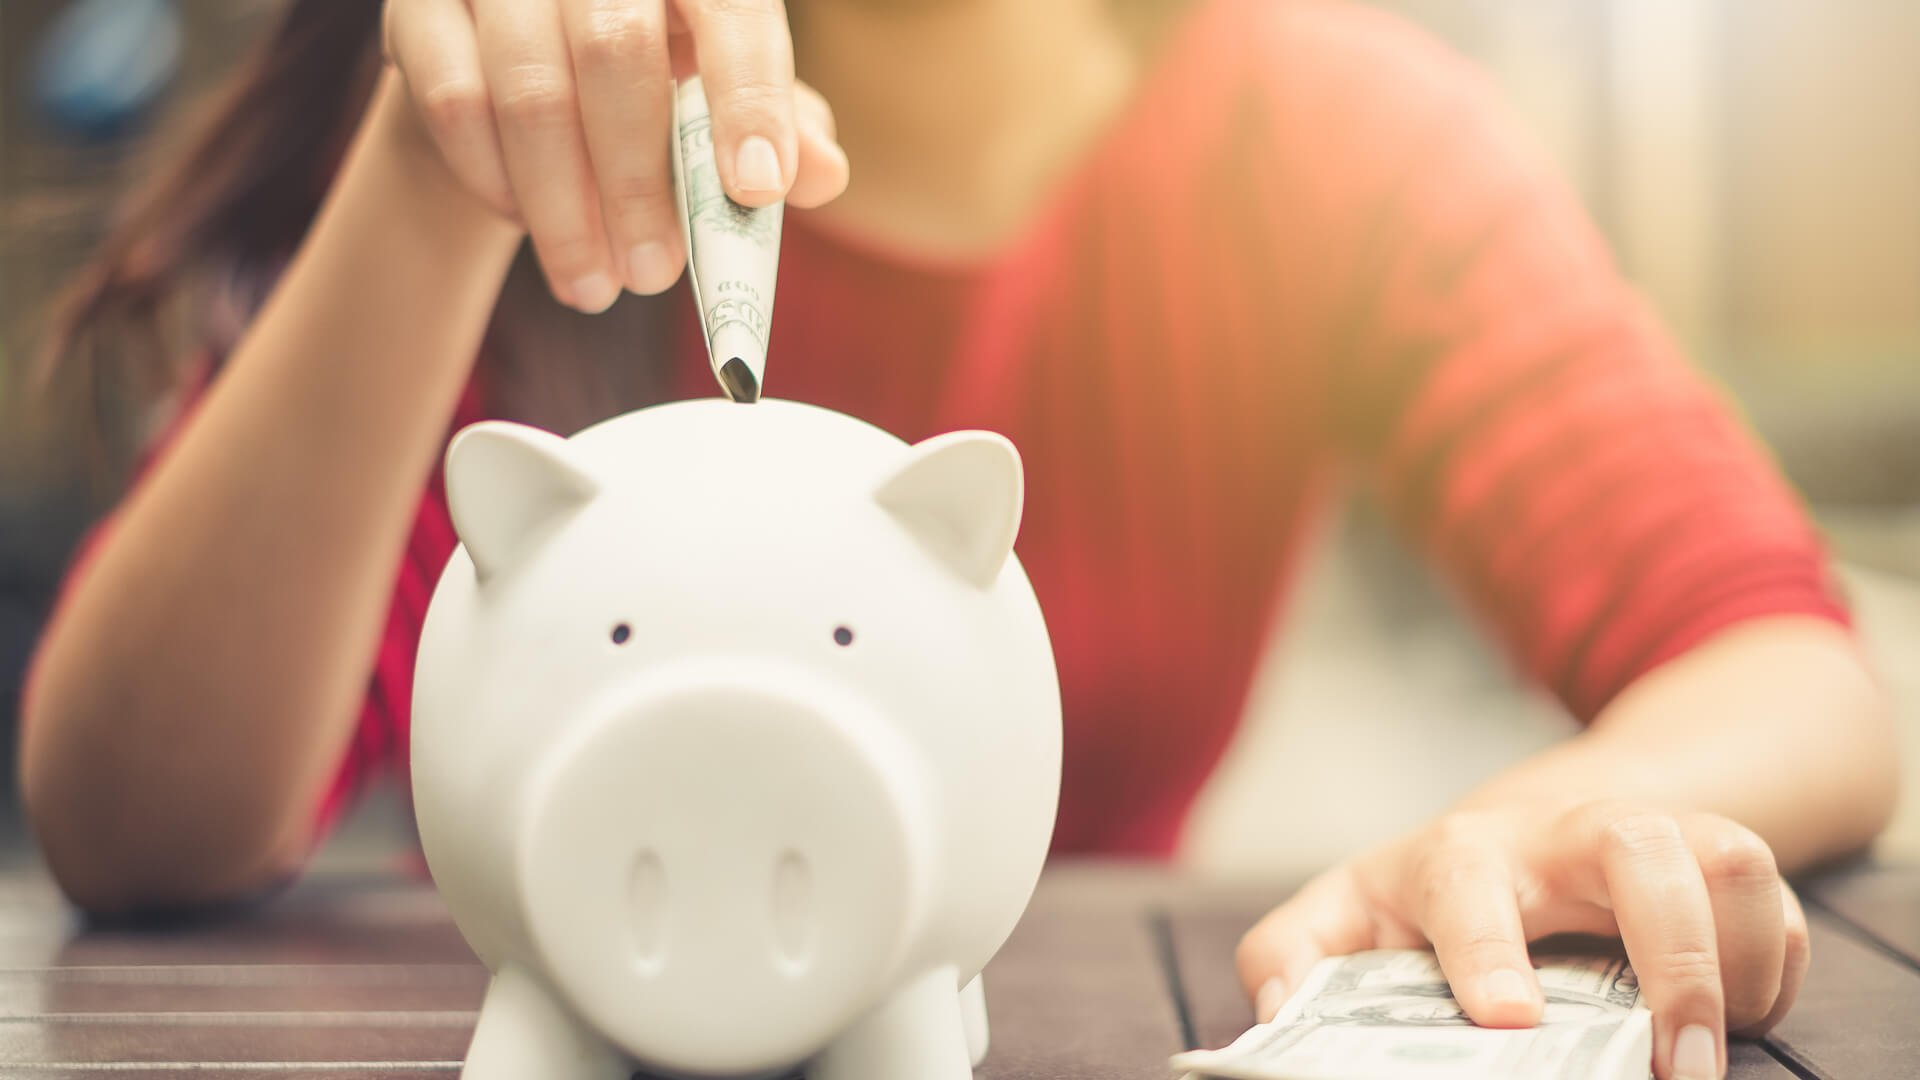 10 Easy Ways To Save $400 Every Month